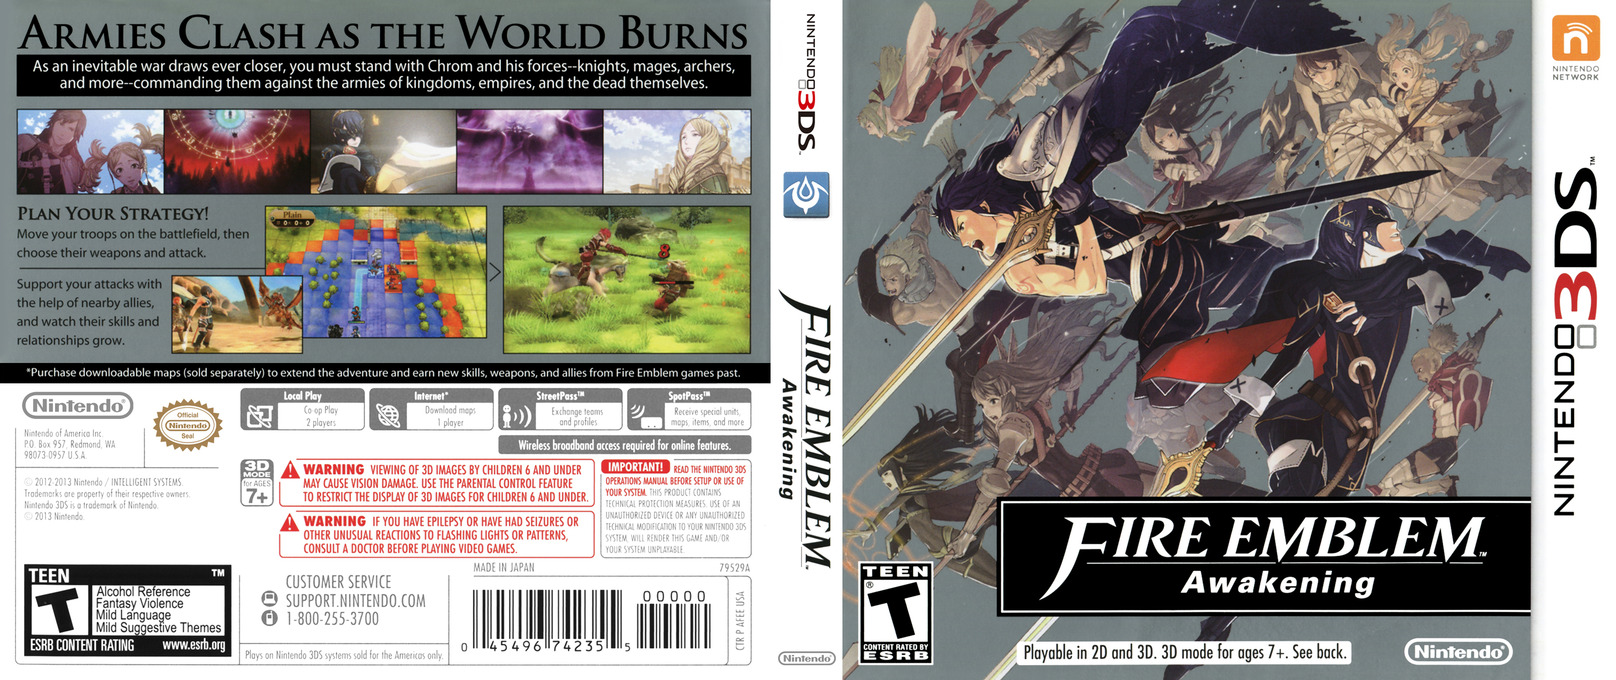 Fire Emblem - Awakening 3DS coverfullHQ (AFEE)